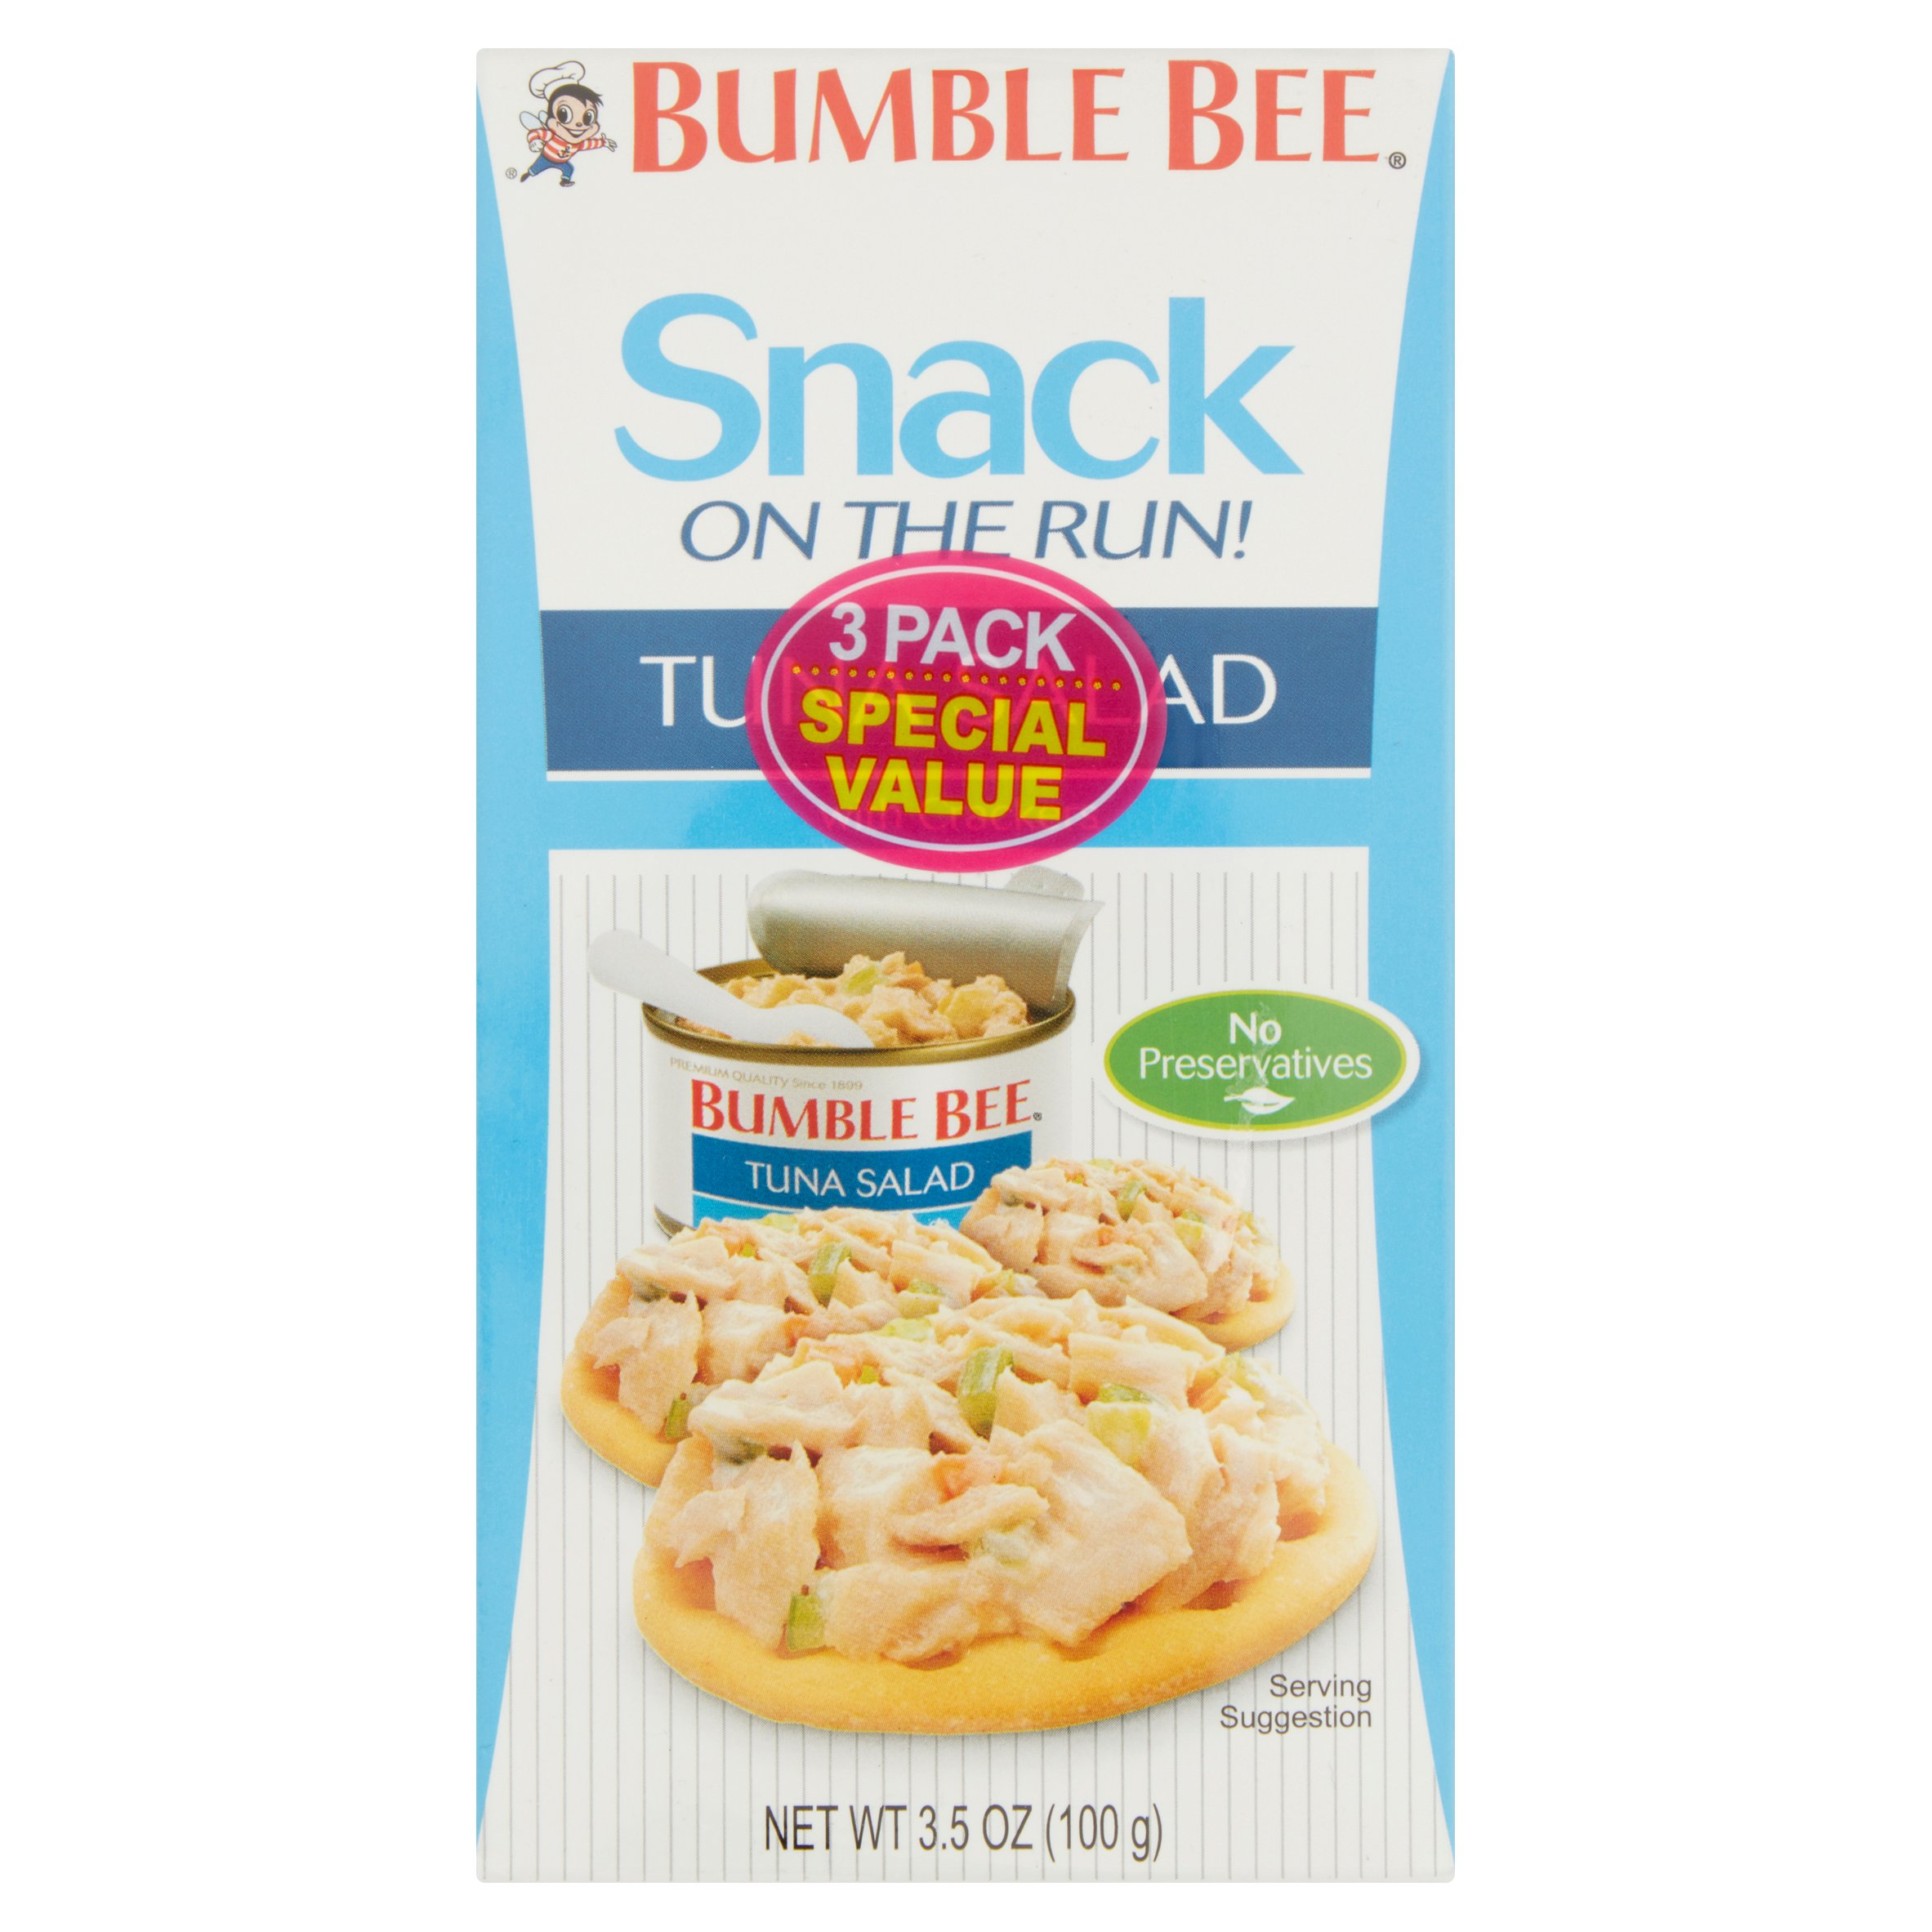 (2 Pack) Bumble Bee Snack on the Run! Tuna Salad with Crackers, Good Source of Protein, 3.5 oz Kit, Pack of 3